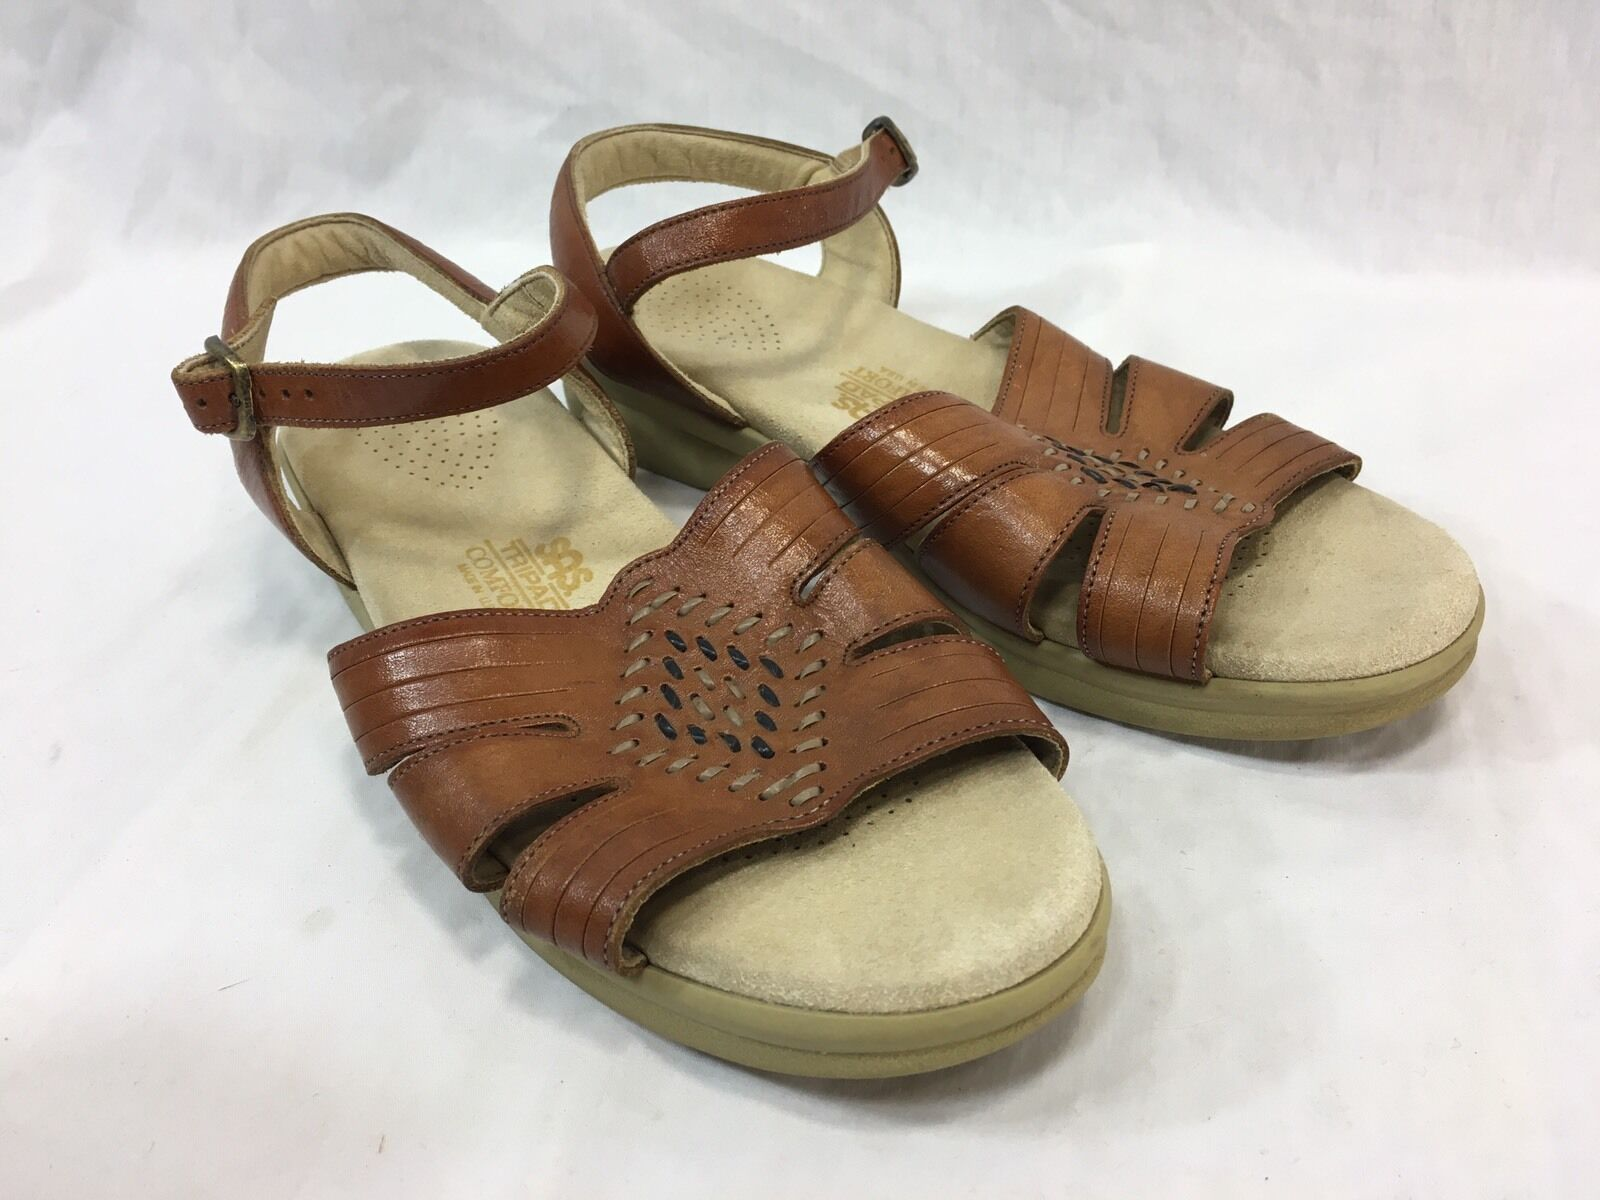 SAS HUARACHE LEATHER LEATHER LEATHER Womens 8 Sandals shoes BROWN TRIPAD COMFORT WOVEN USA 64762a